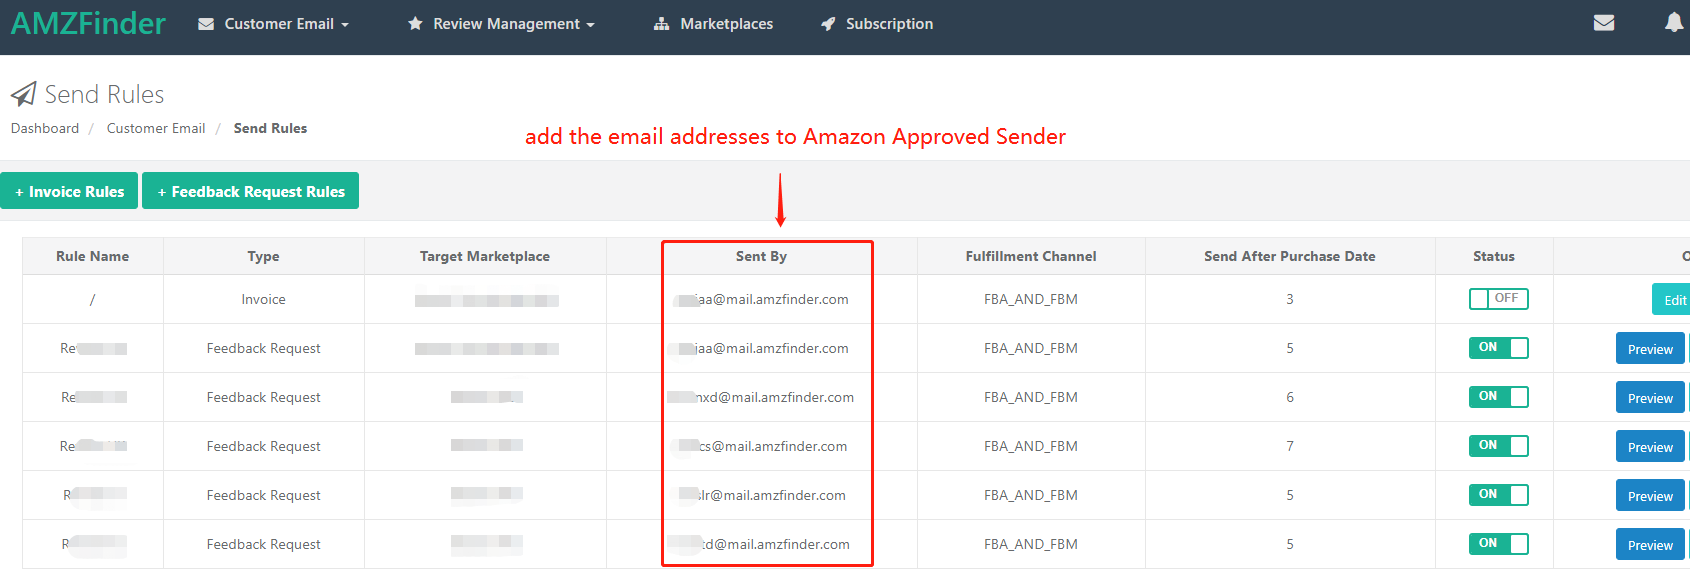 AMZFinder-Amazon approved sender